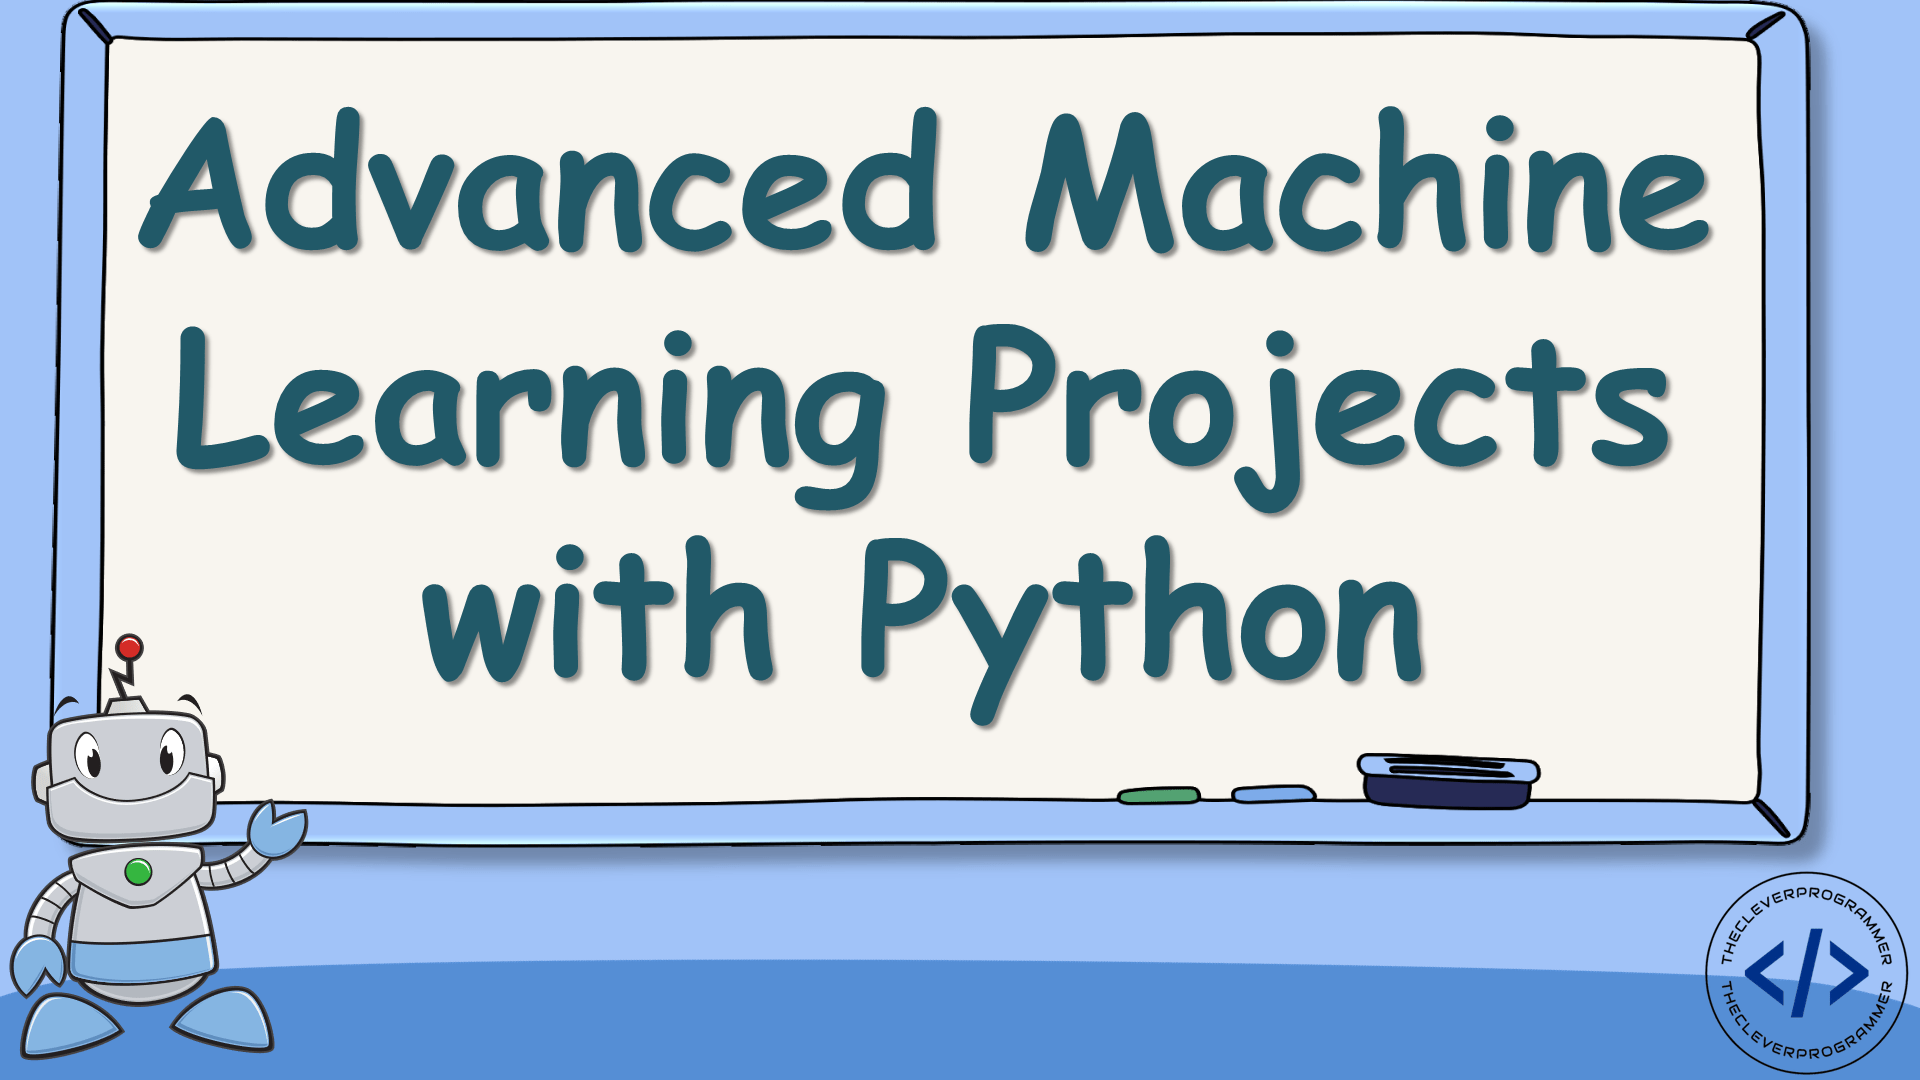 Advanced Machine Learning Projects